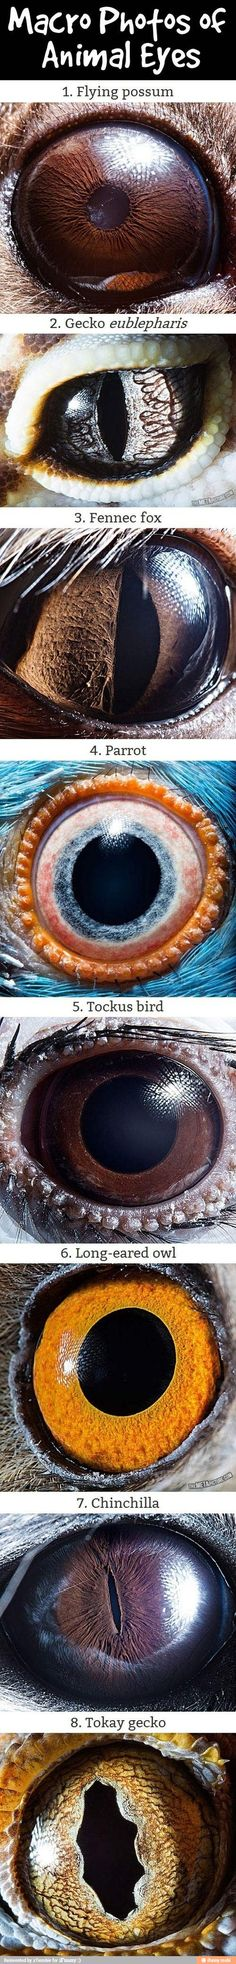 Macro photos of animal eyes so weird